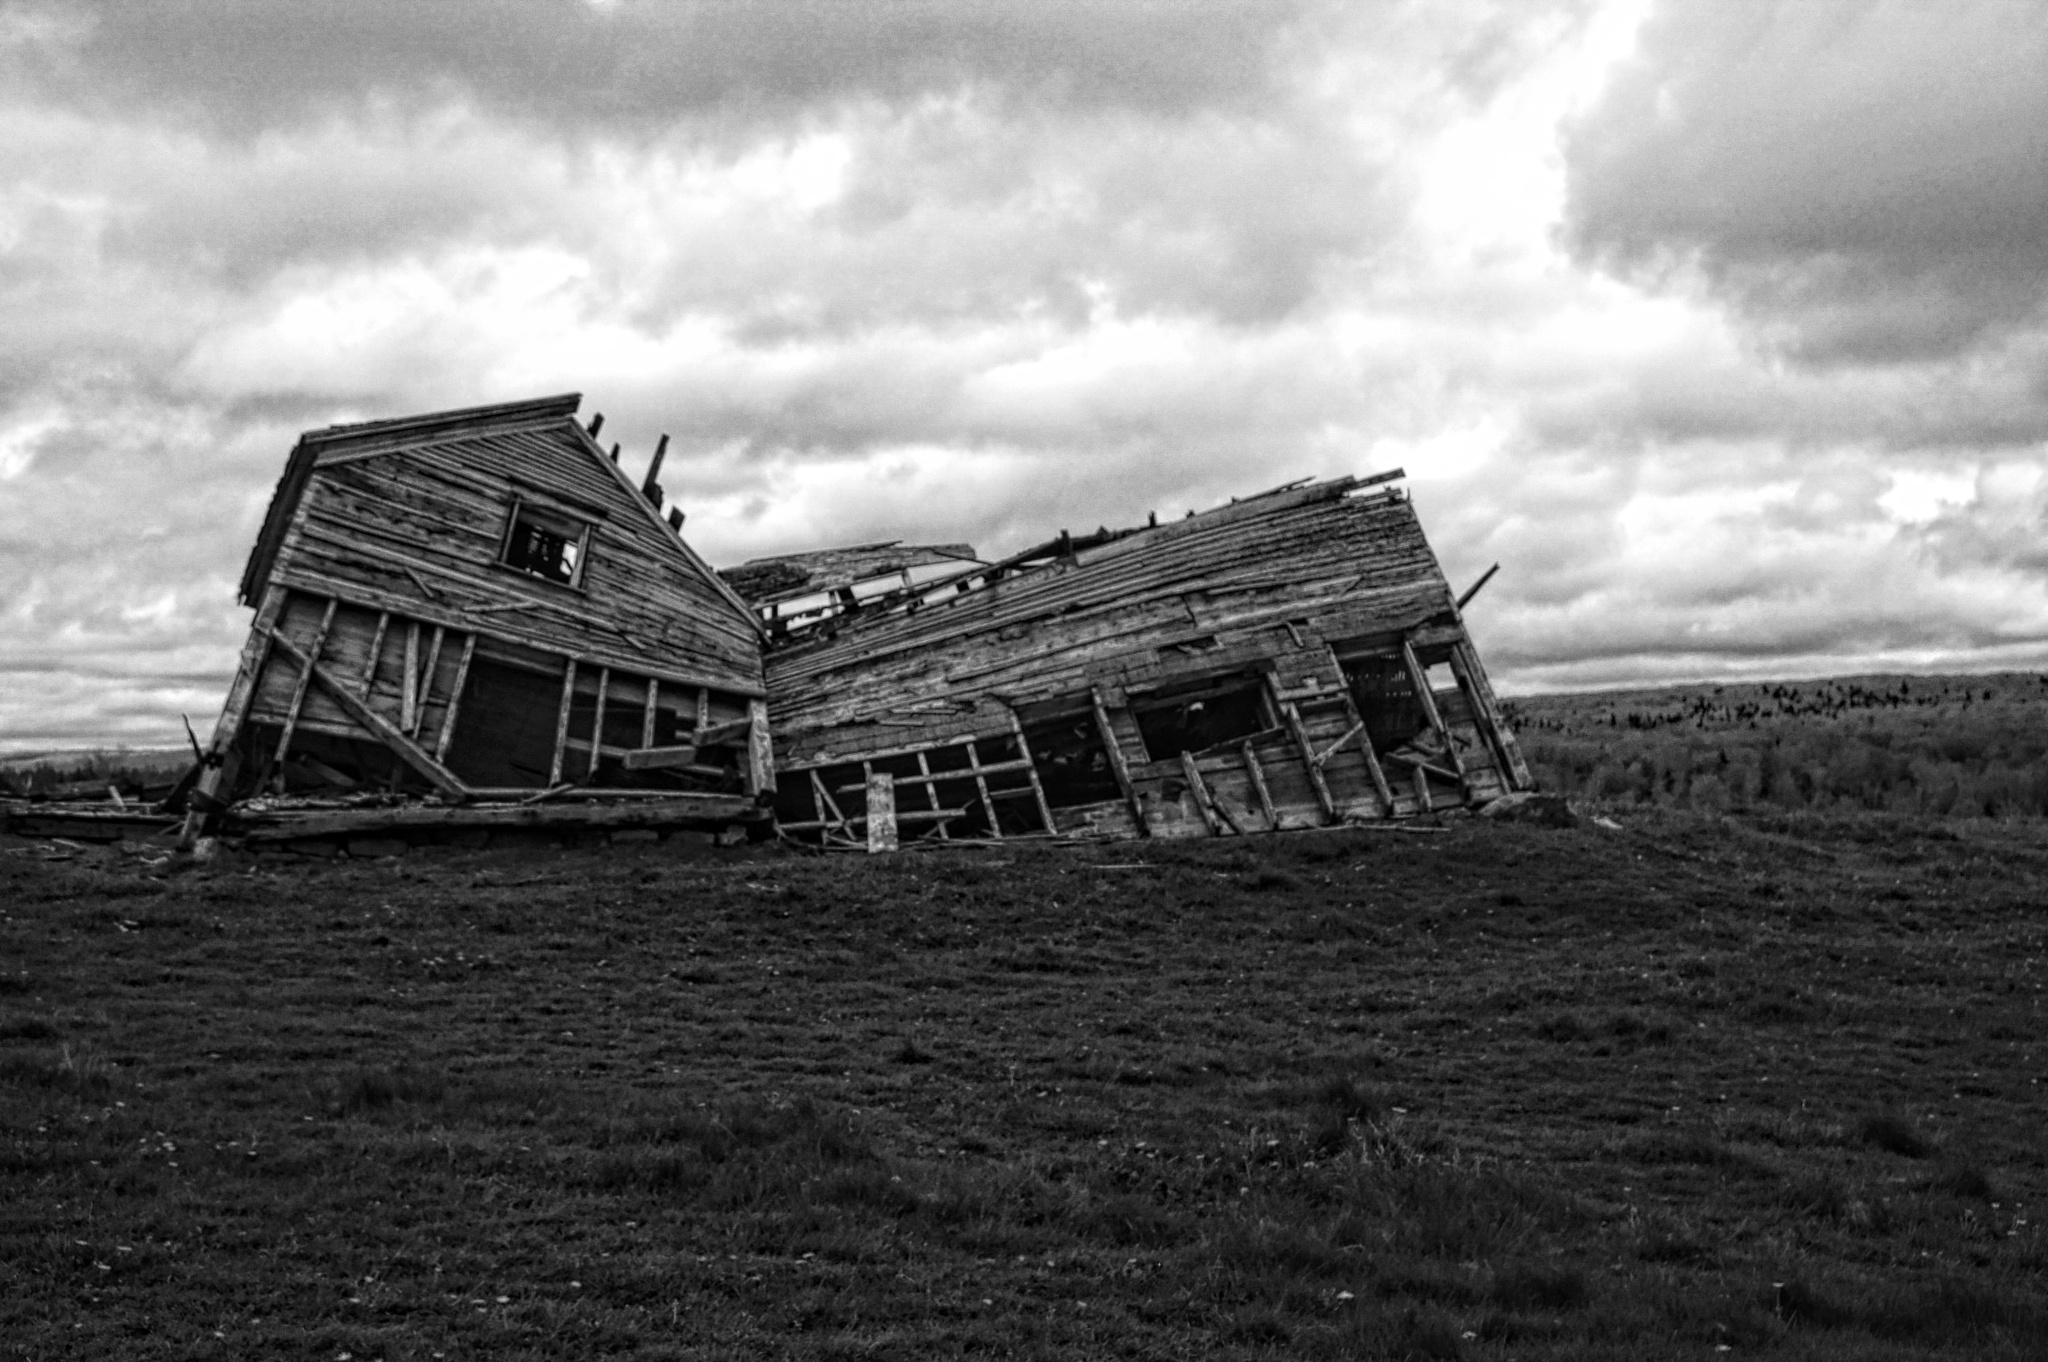 The most Photographed House in Nova Scotia no Longer Stands by Wayne L. Talbot